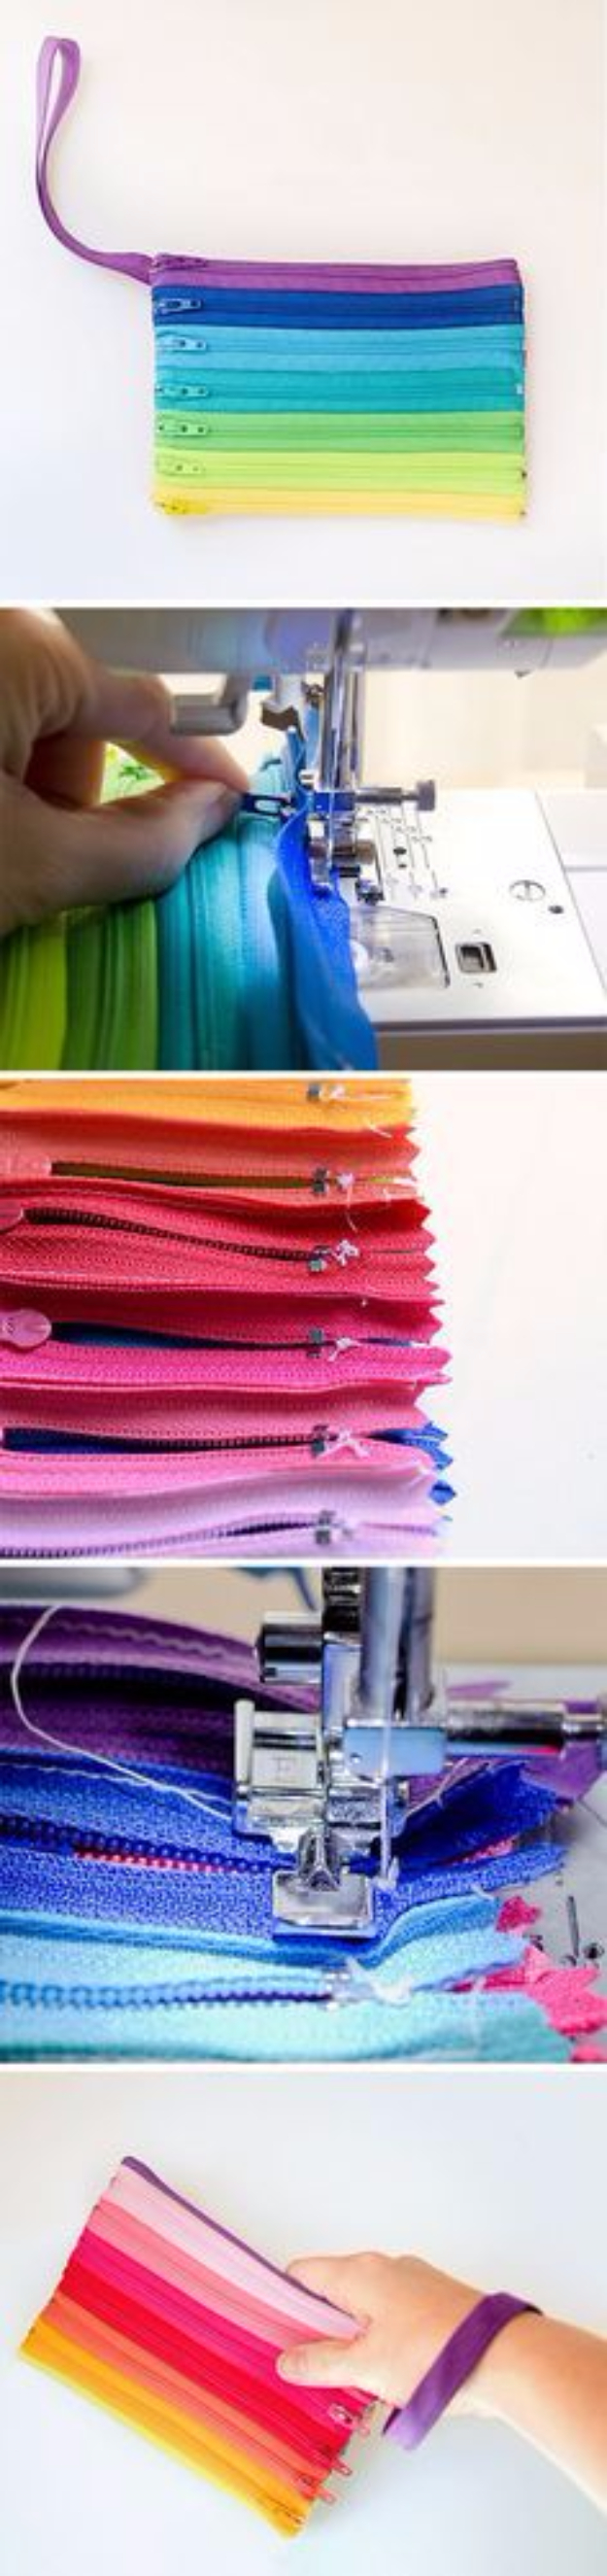 Creative DIY Projects With Zippers - Zippered Clutch - Easy Crafts and Fashion Ideas With A Zipper - Jewelry, Home Decor, School Supplies and DIY Gift Ideas - Quick DIYs for Fun Weekend Projects